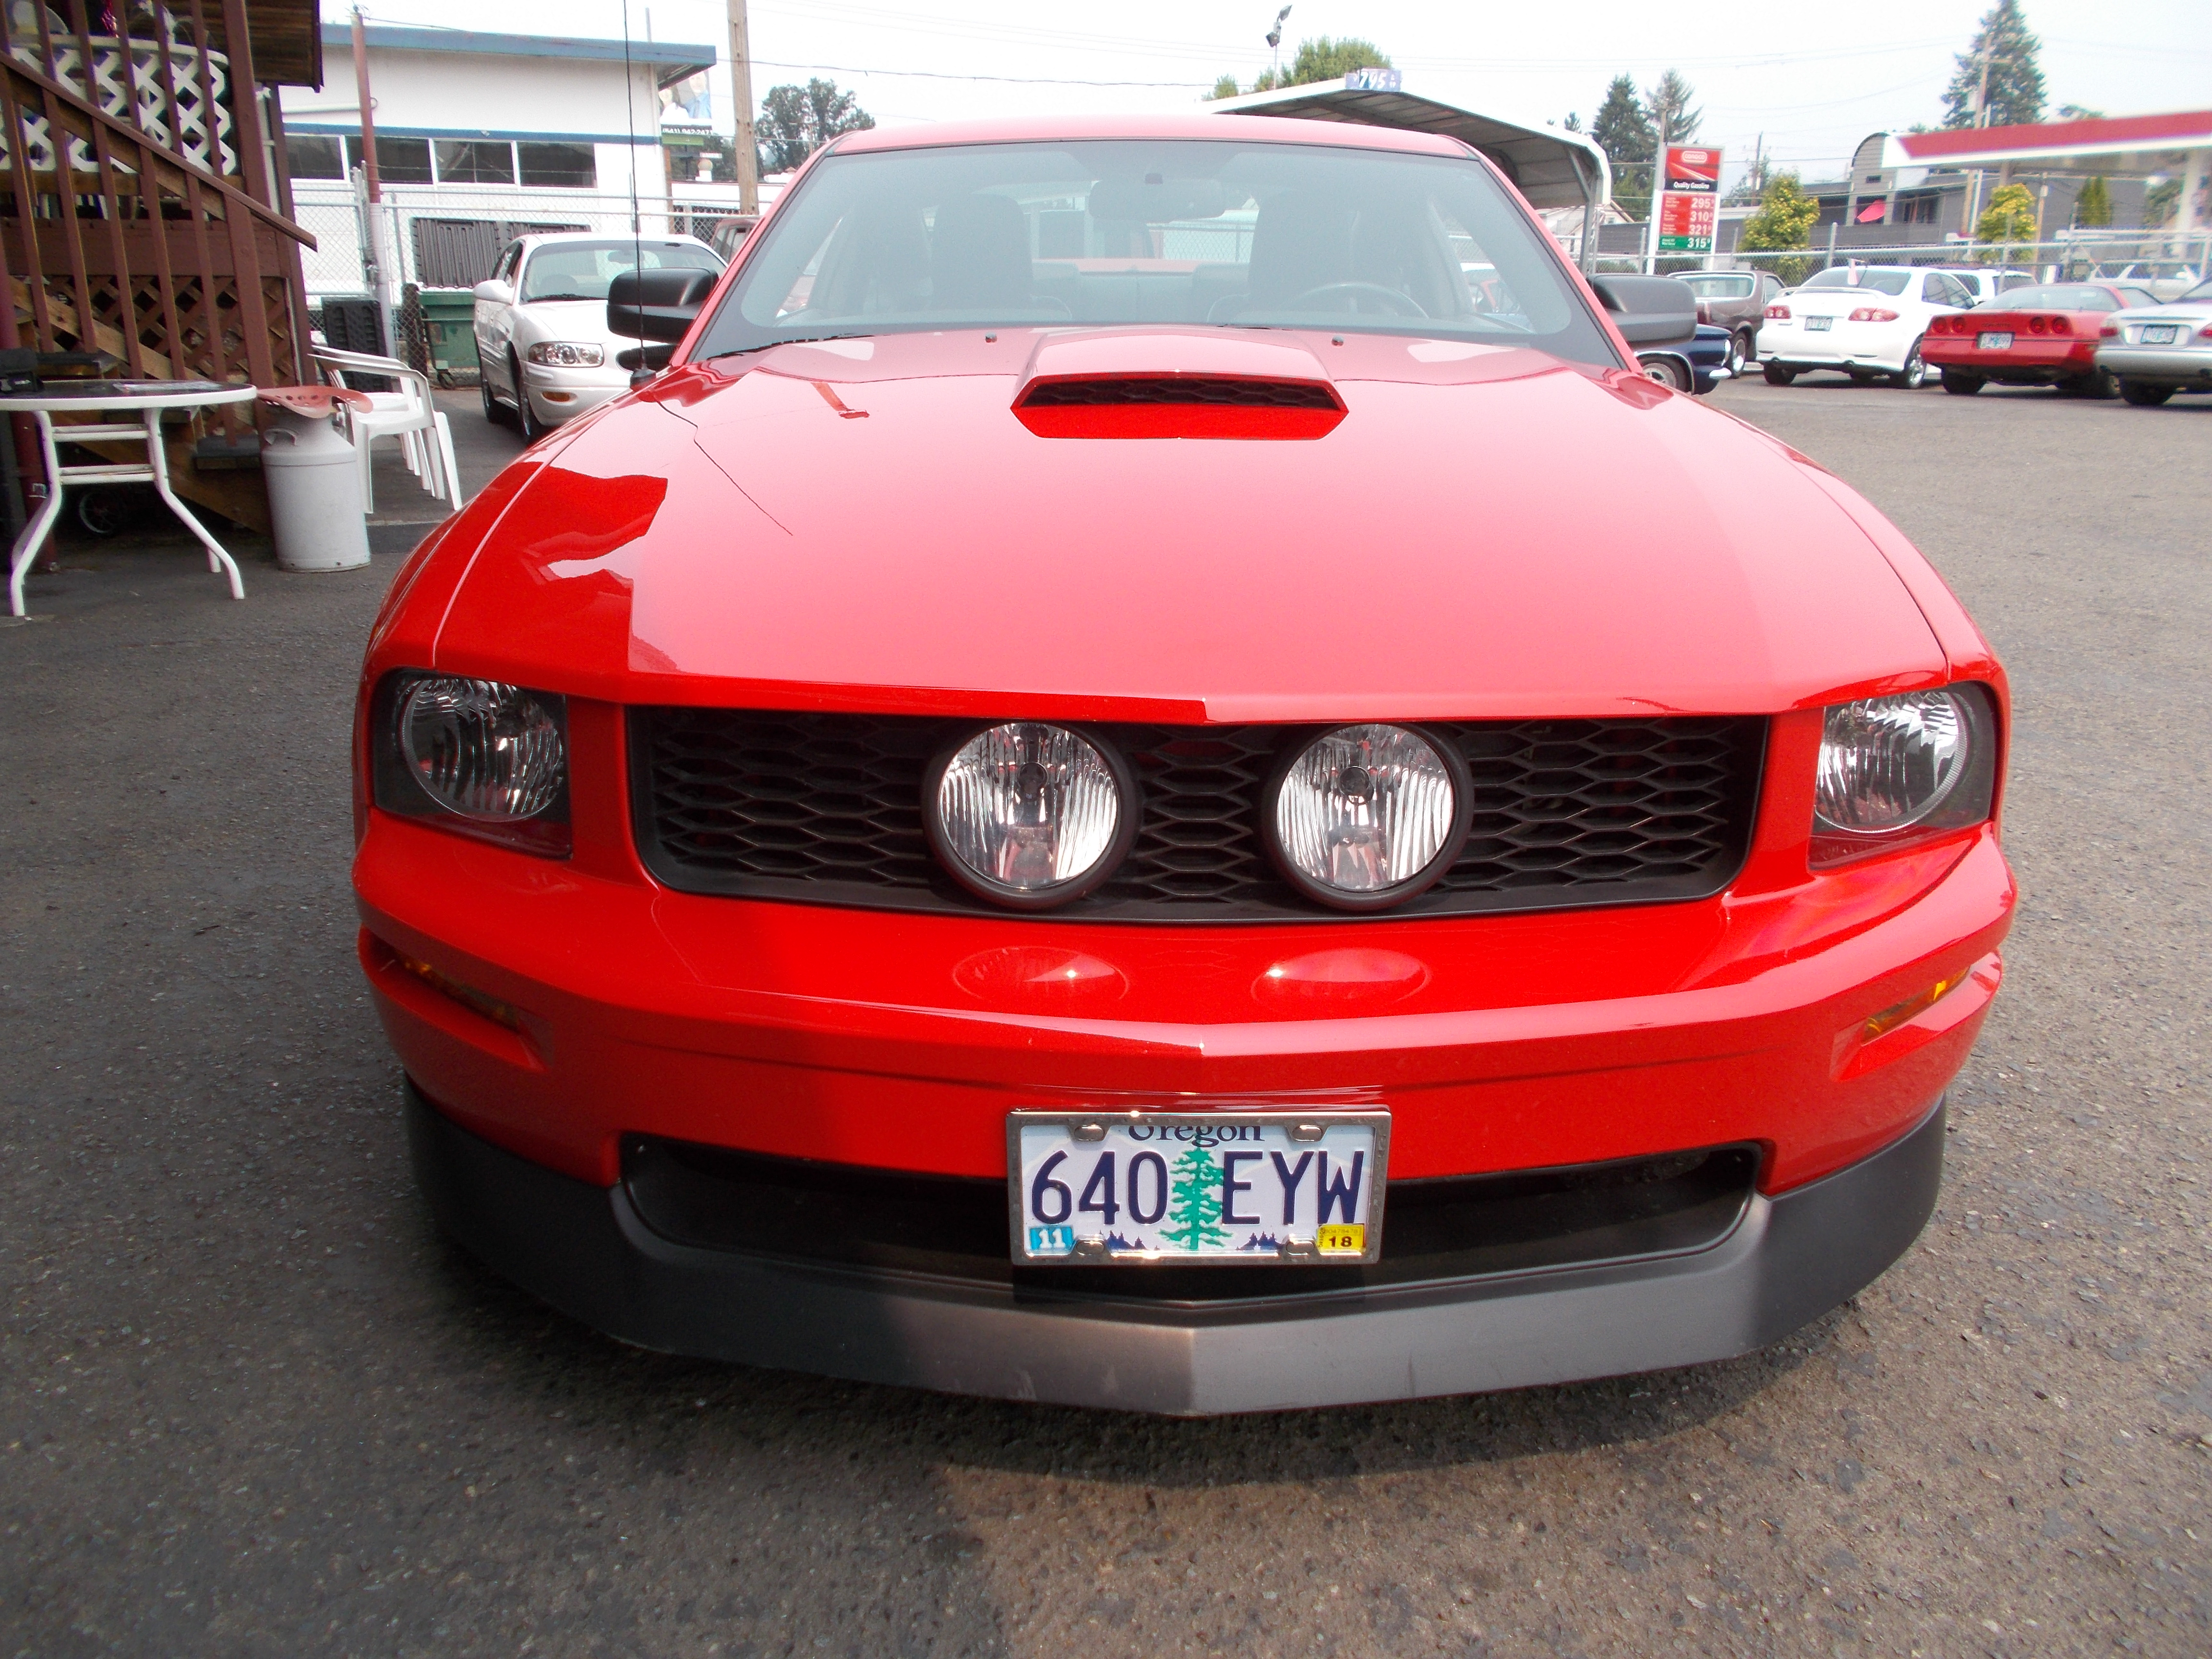 2007 Red Mustang >> New Page 1 [hamiltonsclassicautos.com]